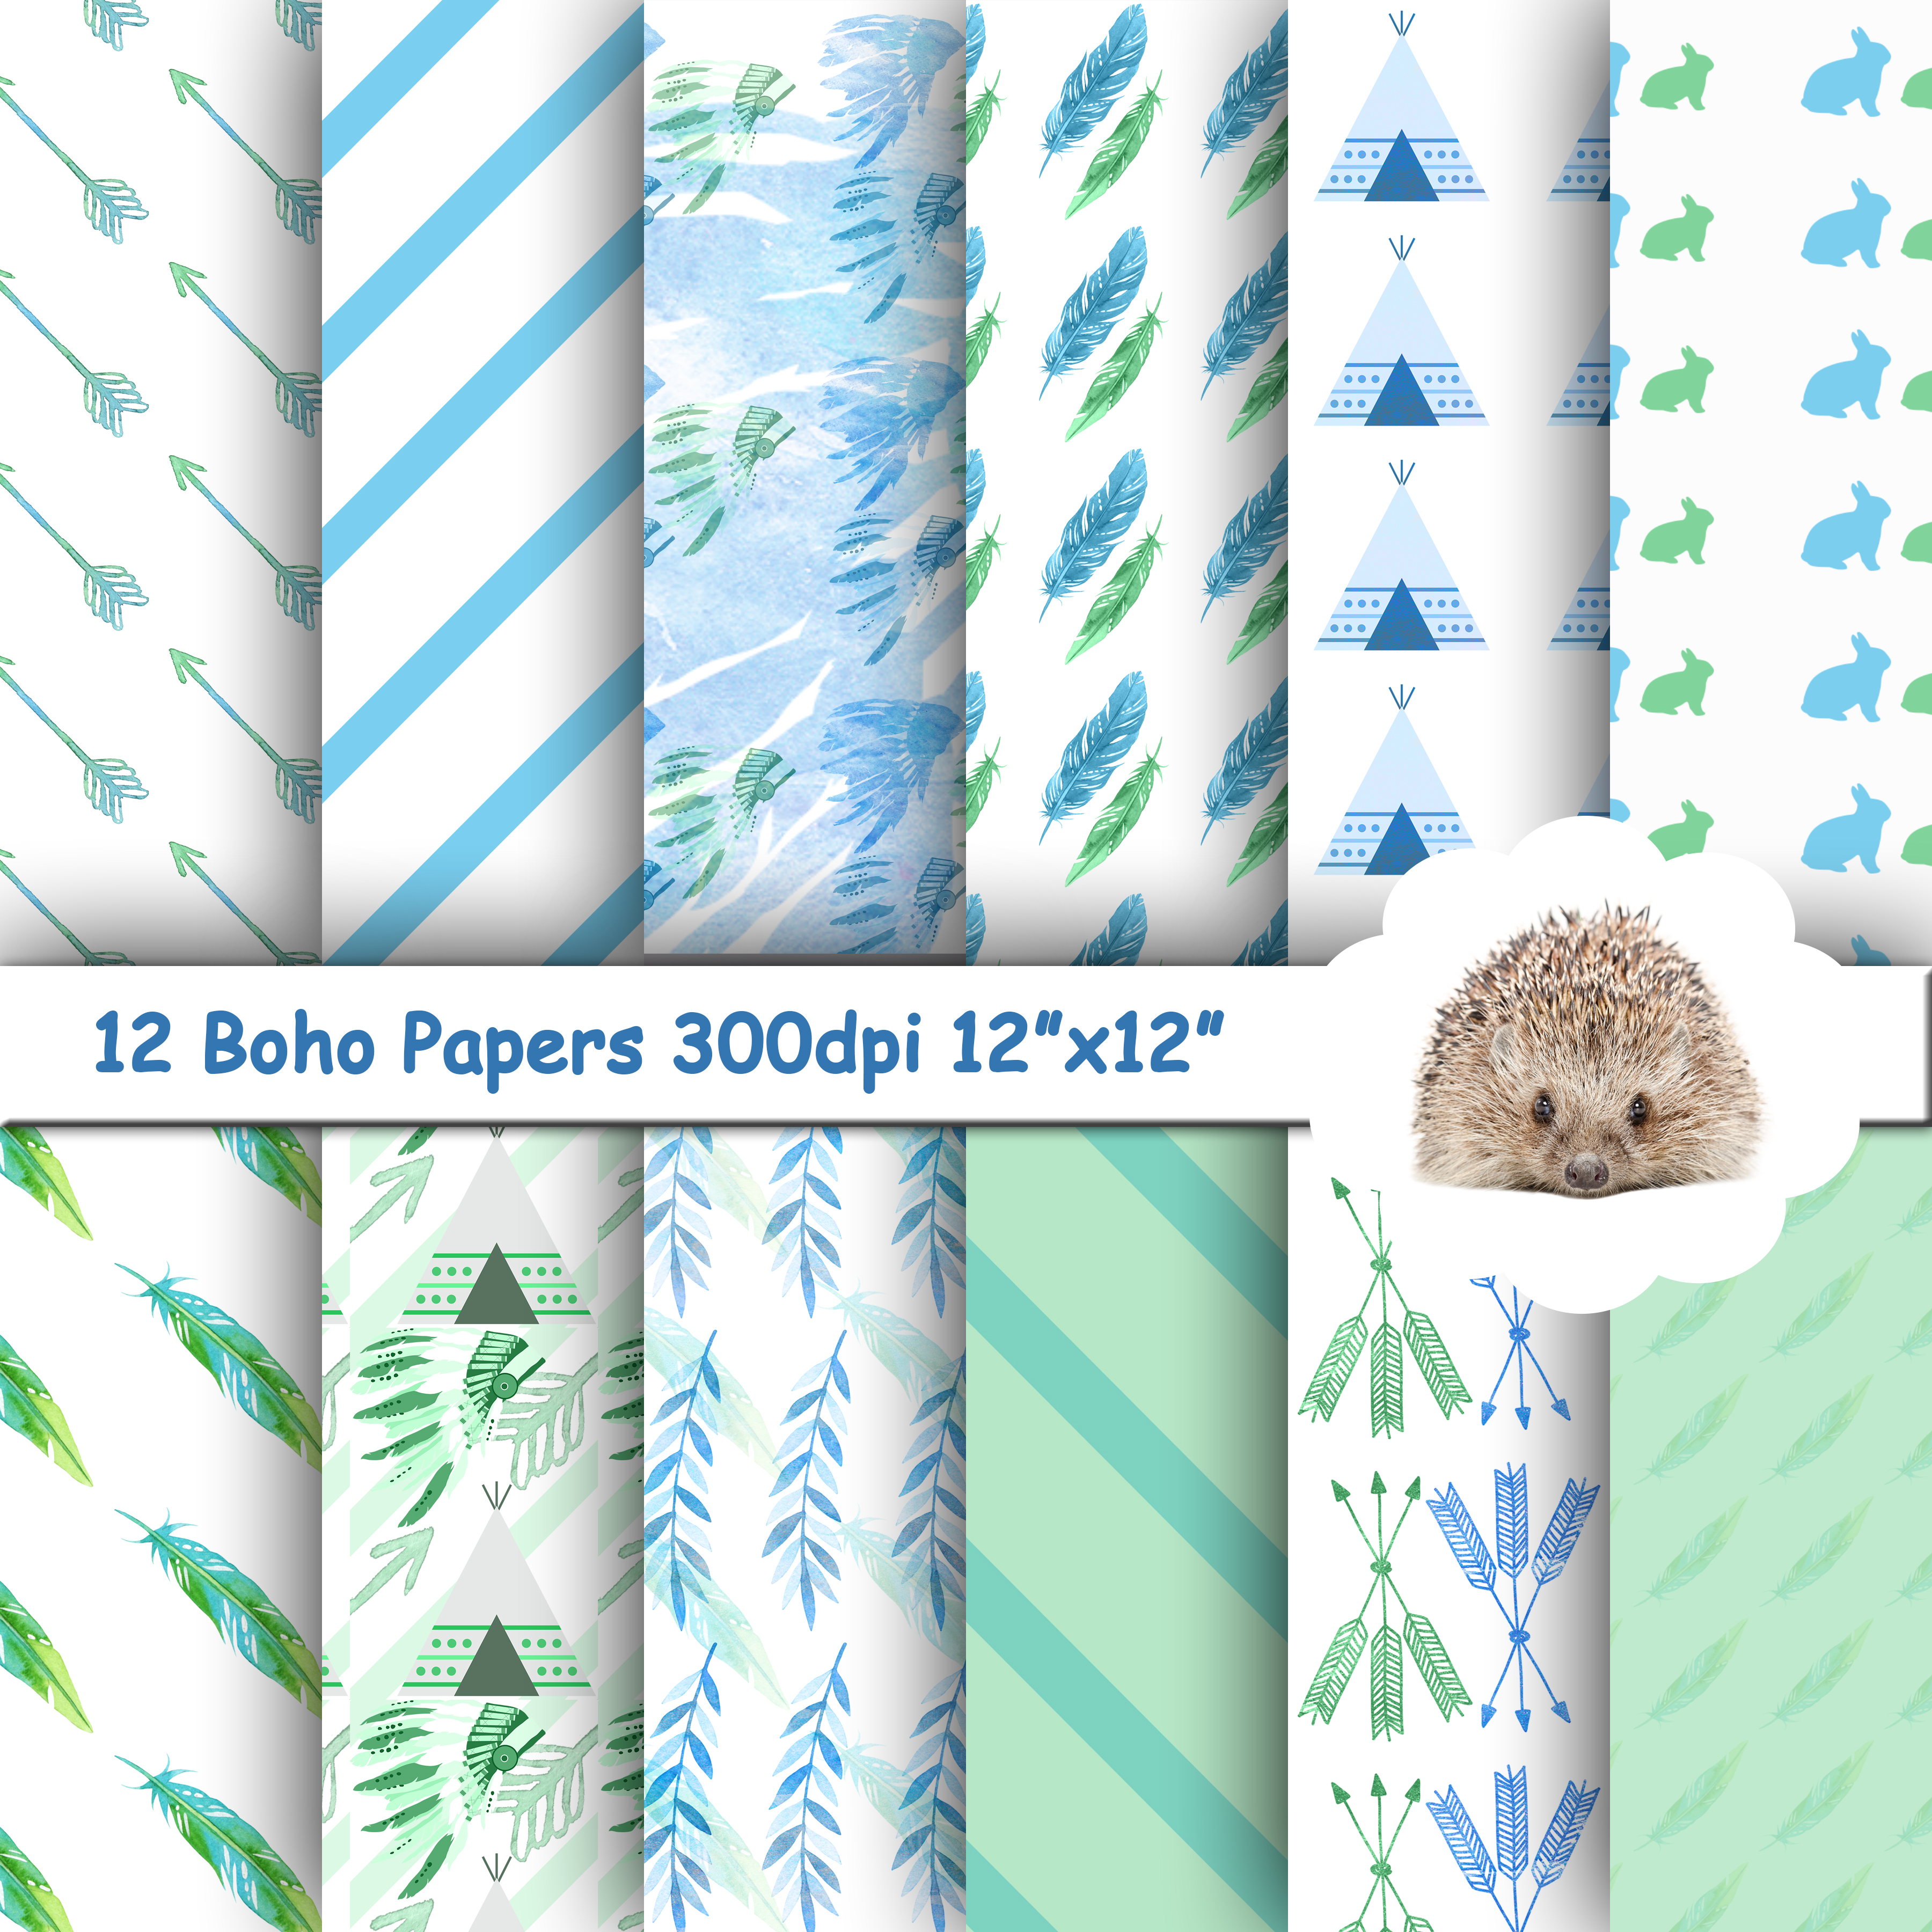 12 Blue and Green Boho Patterned Papers / Backgrounds example image 1